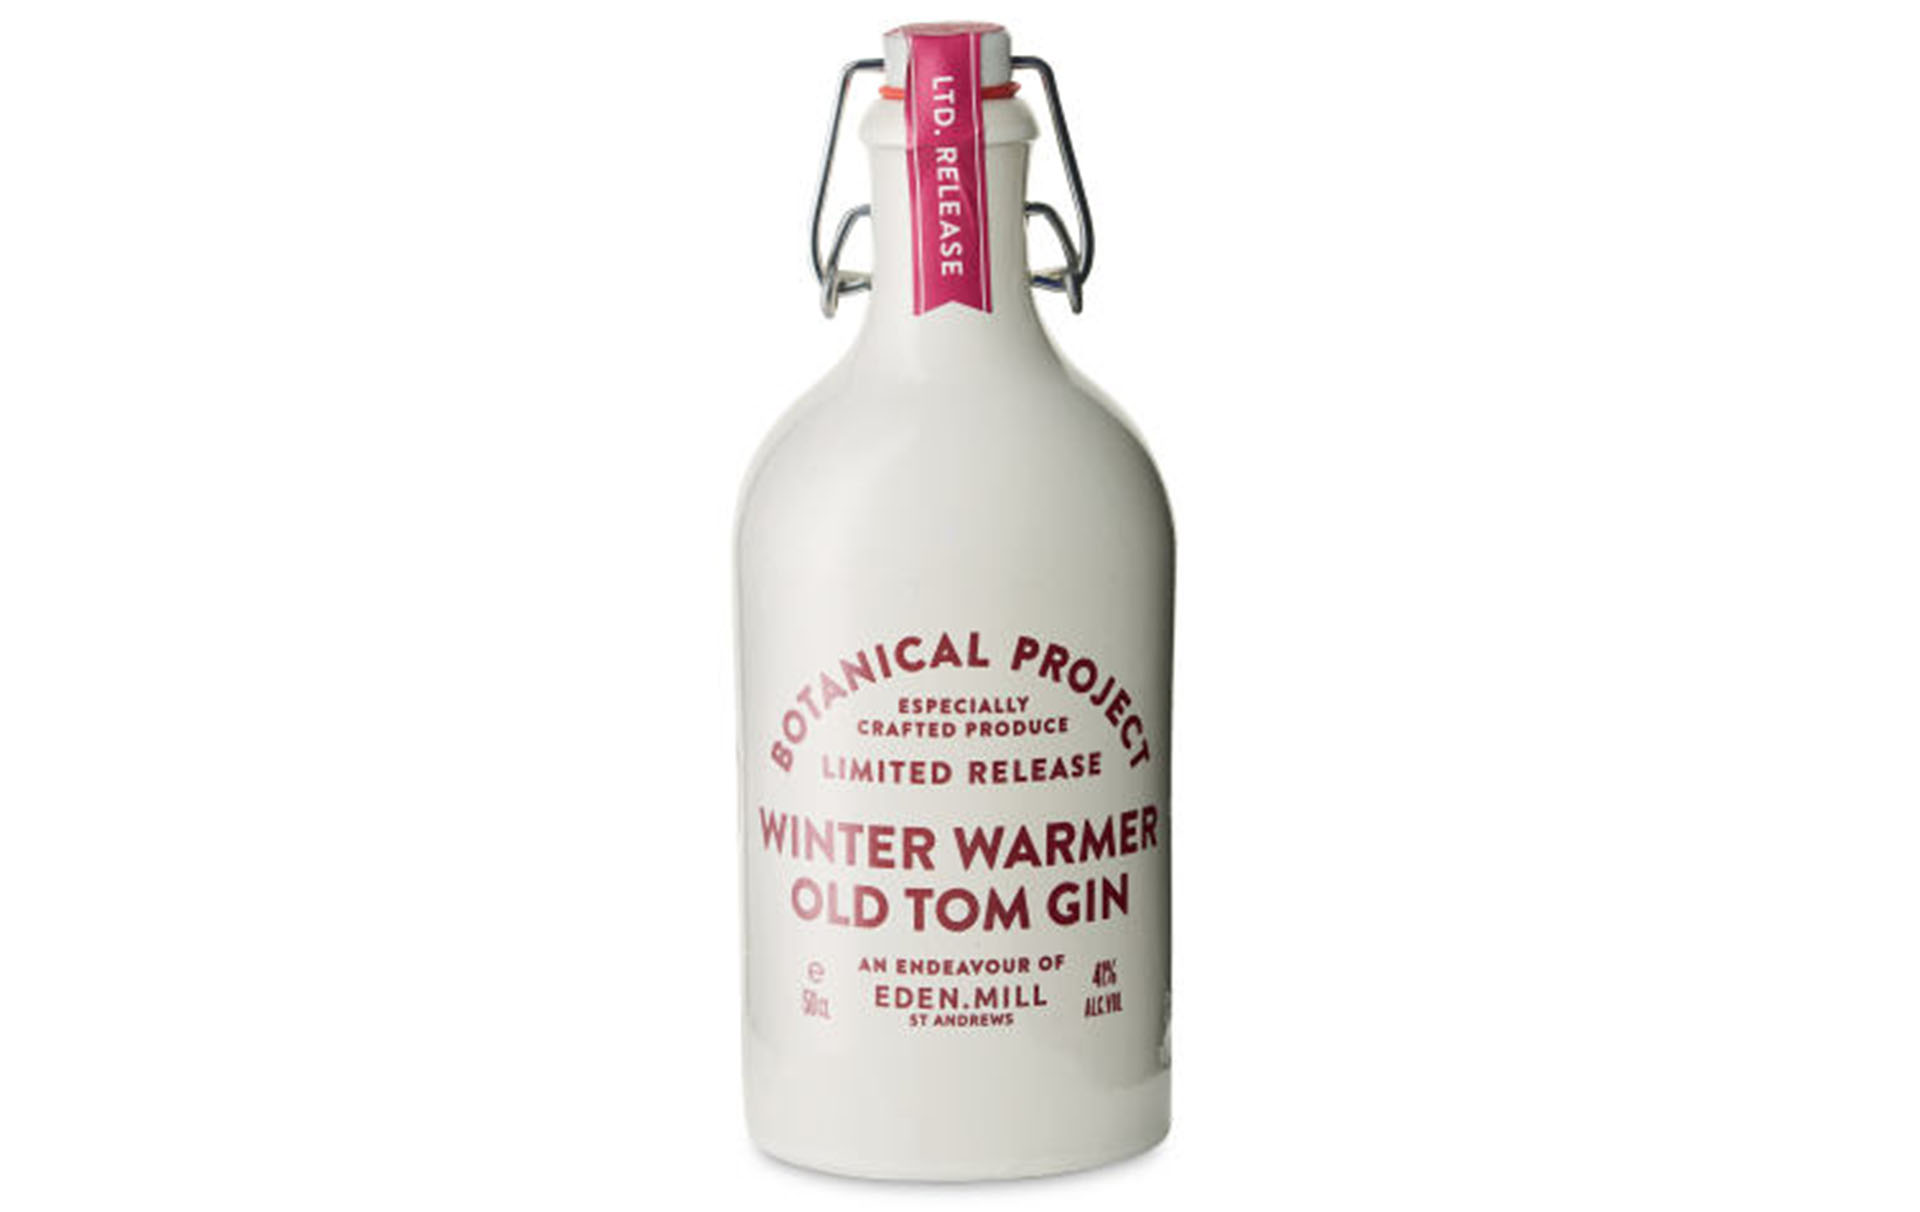 aldi salted caramel and apple gin, aldi winter warmer old tom gin